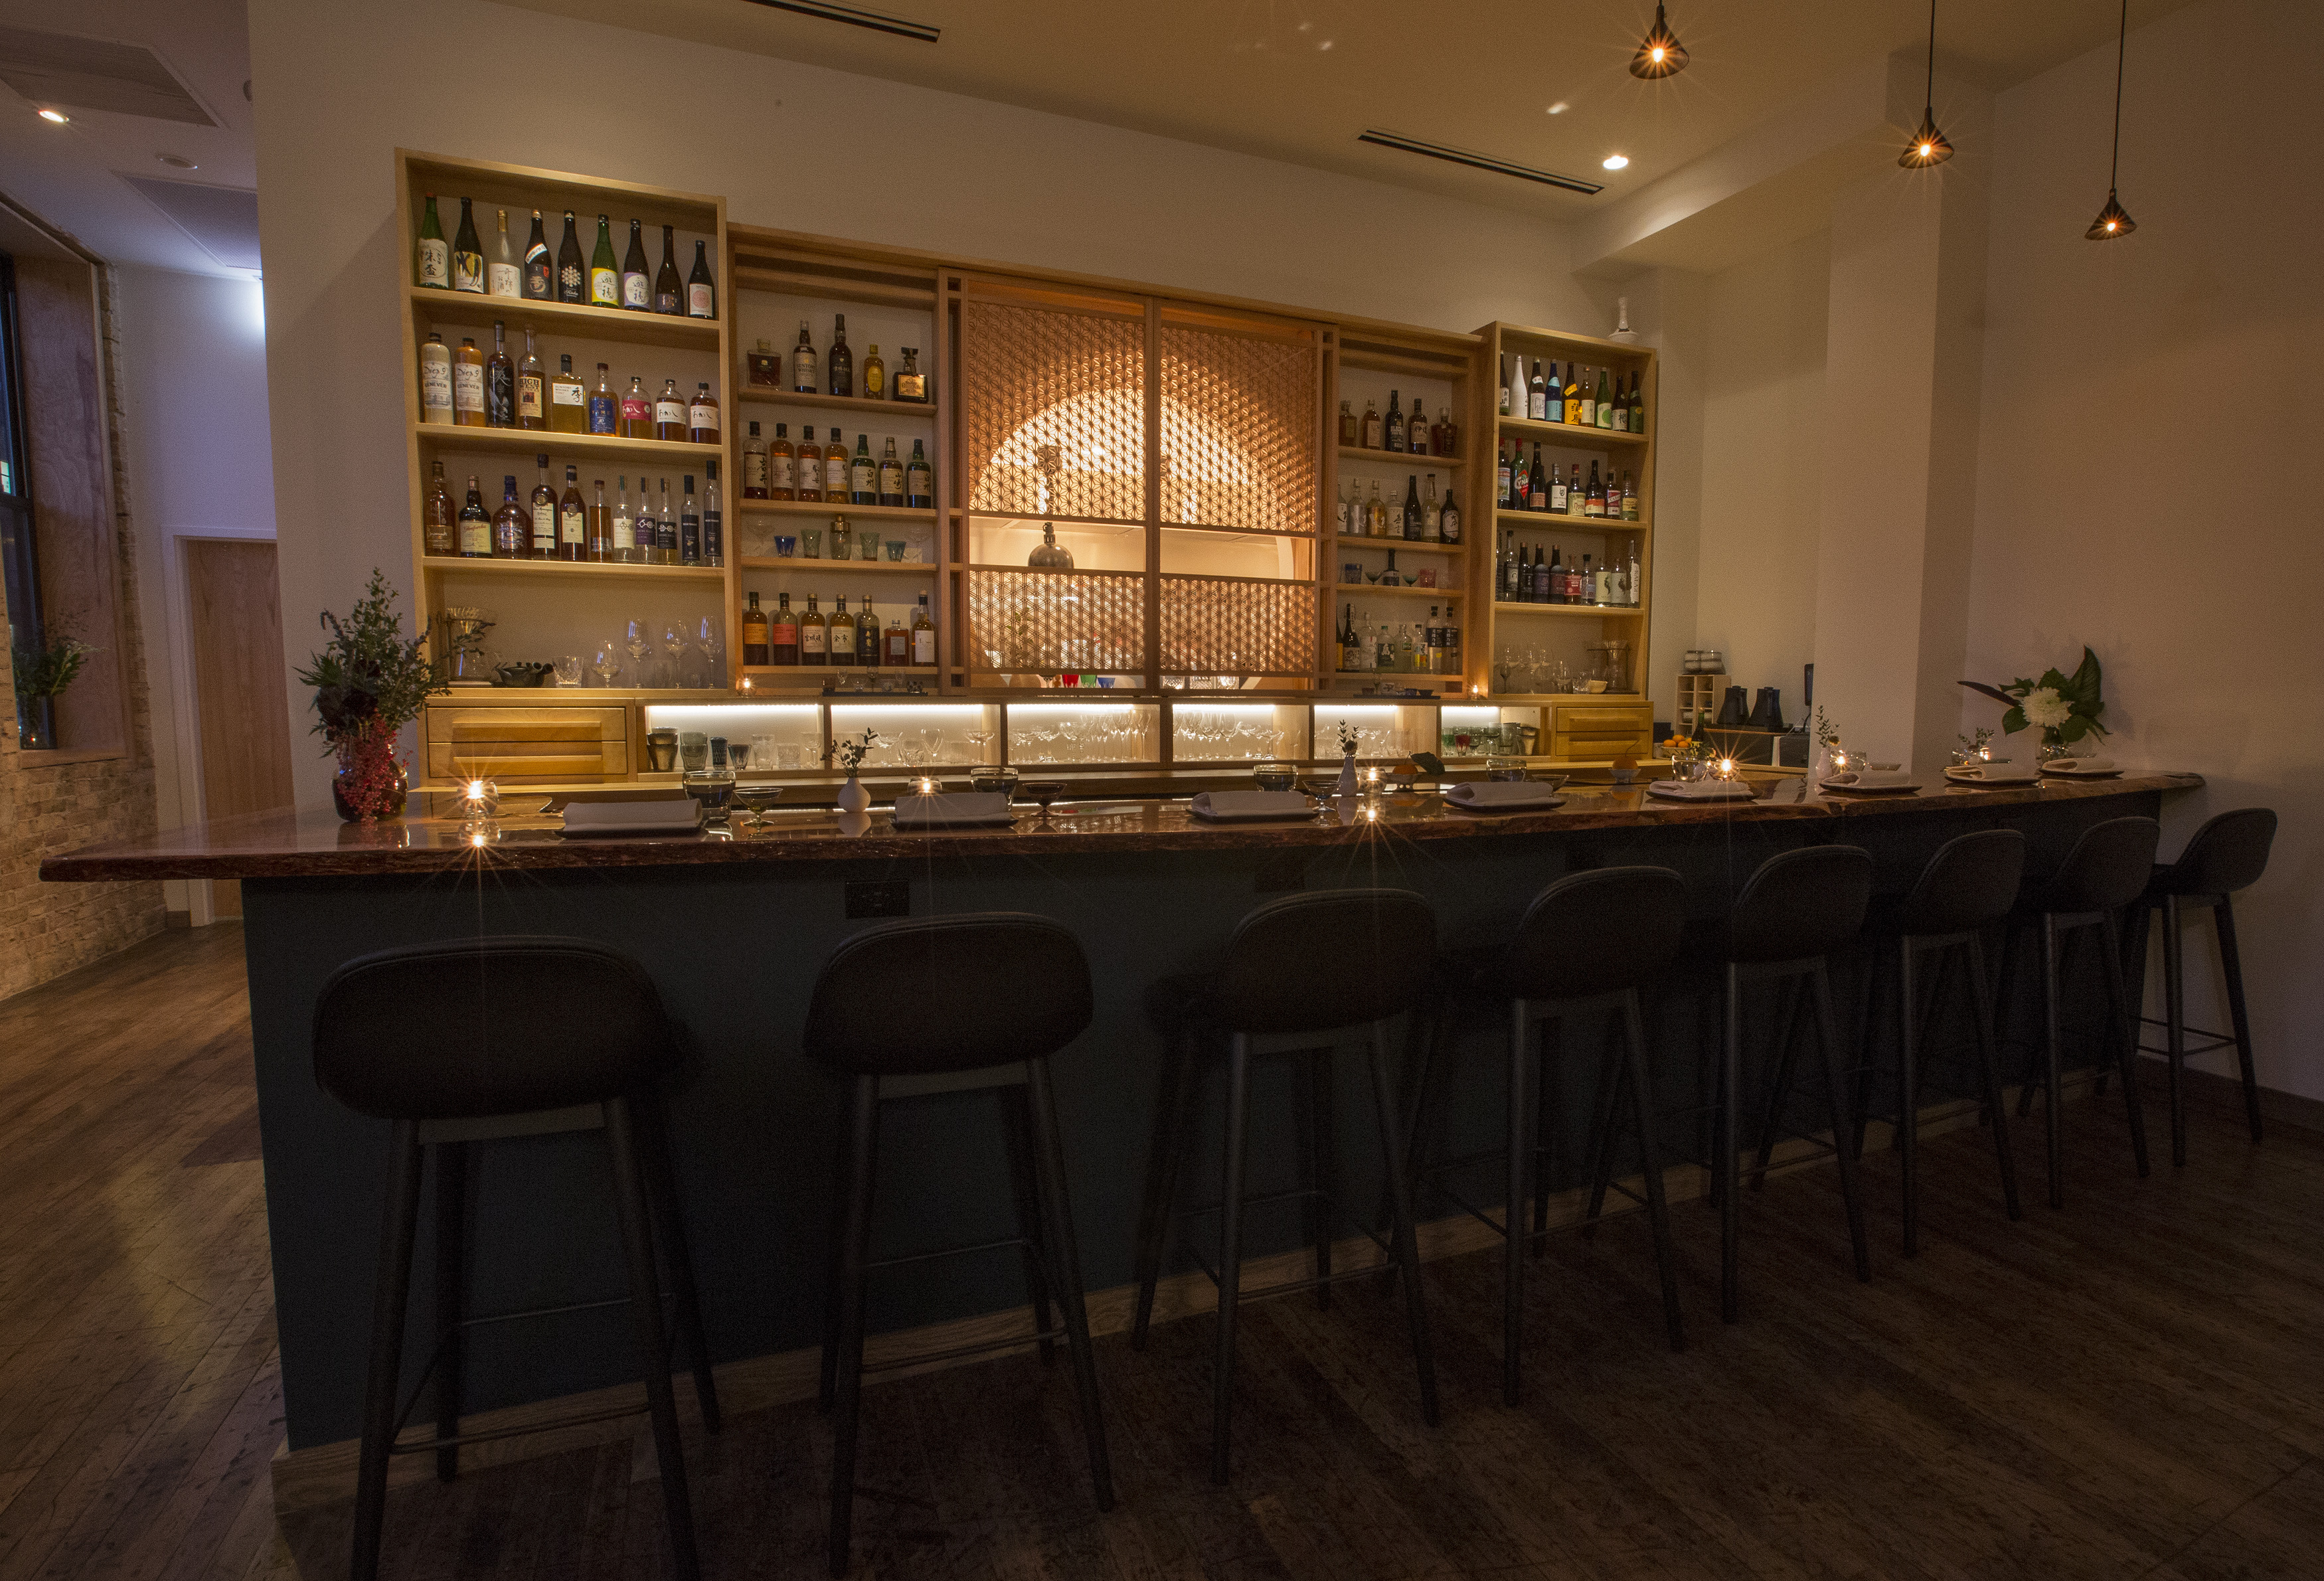 A bar with stools and a wooden shelf in back.